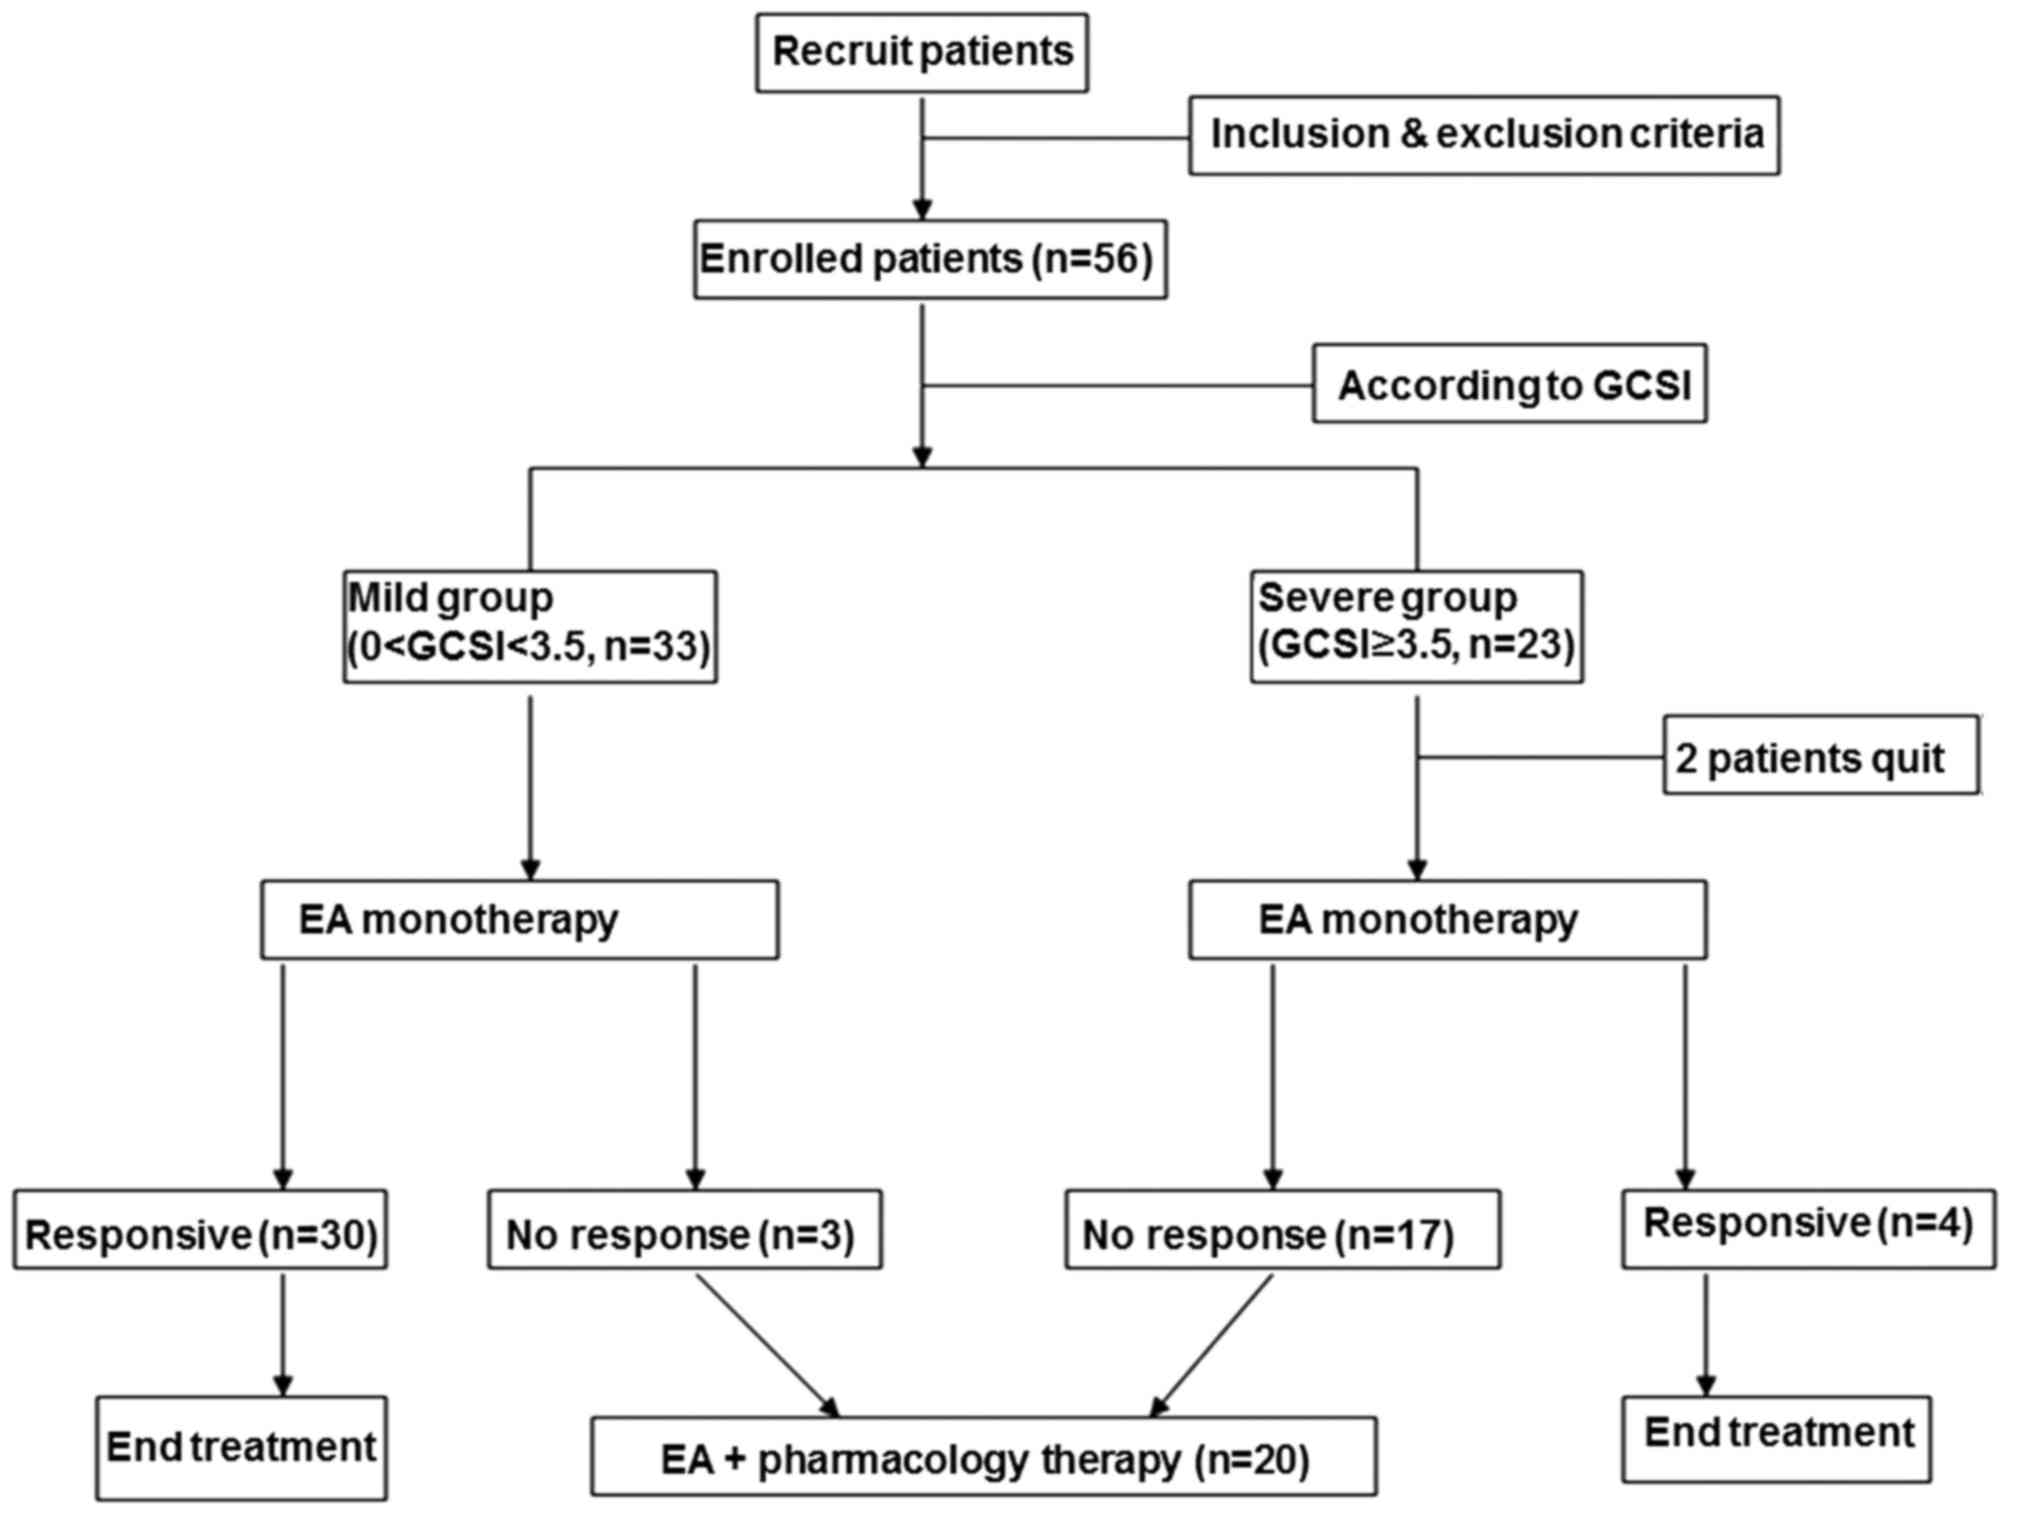 Electroacupuncture combined with mosapride alleviates symptoms in study flowchart to show the movement of patients throughout the study gcsi gastroparesis cardinal symptom index ea electroacupuncture nvjuhfo Image collections